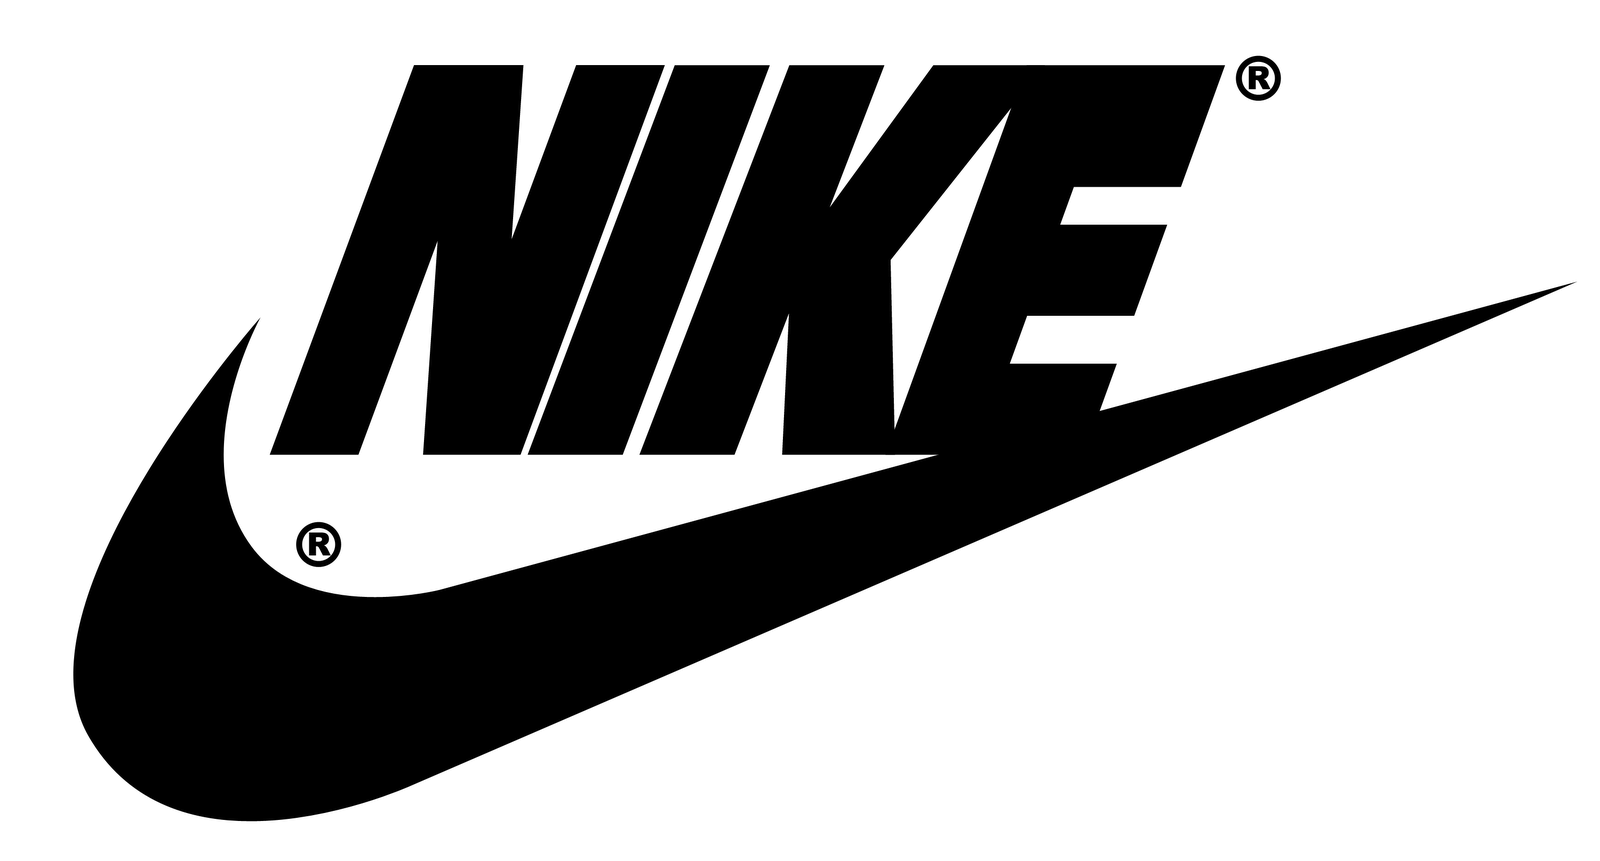 nike-swoosh-logo-png-the-top-10-most-popular-shoe-brands-everyone-is-wearing-top-10-rate-pict.png